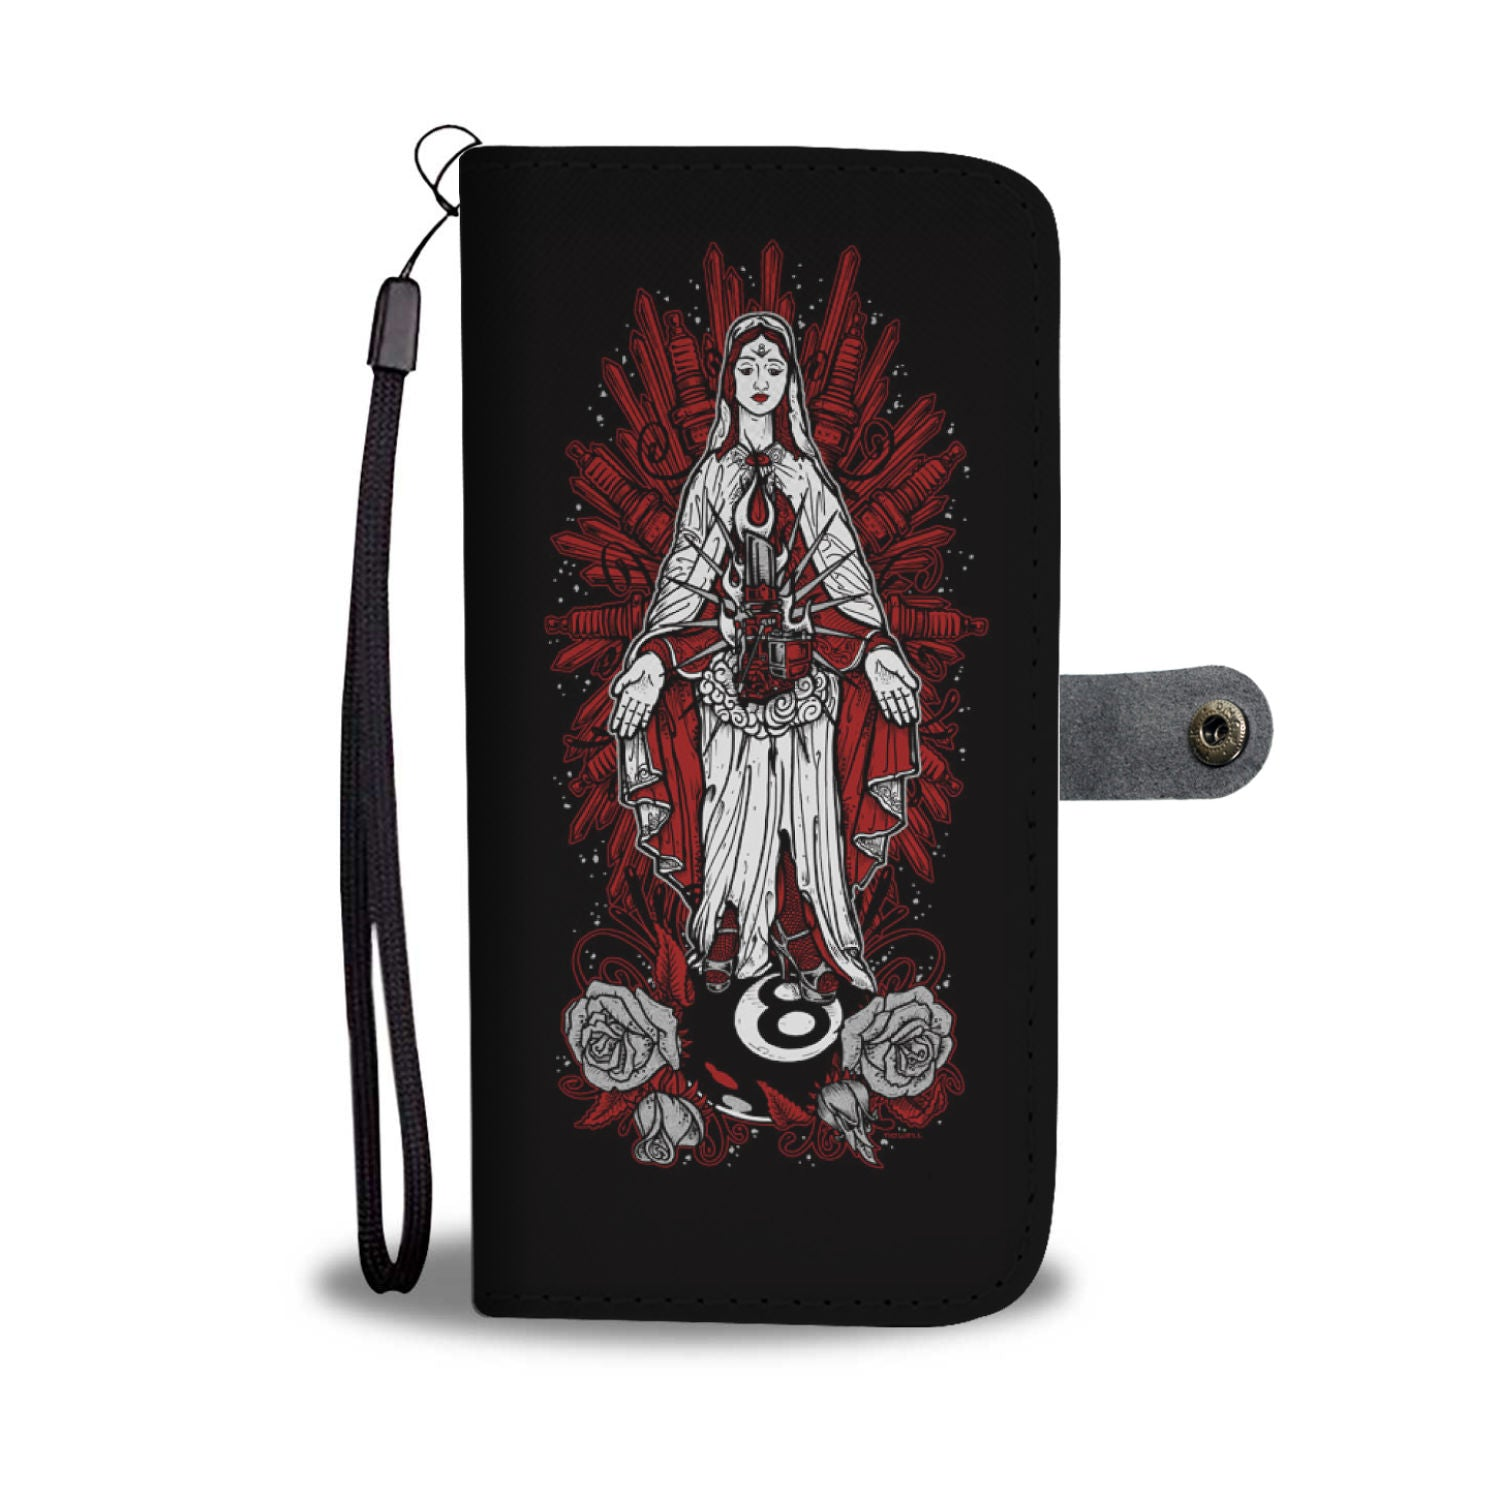 Hot Rod Mary - Wallet case - fastandtune